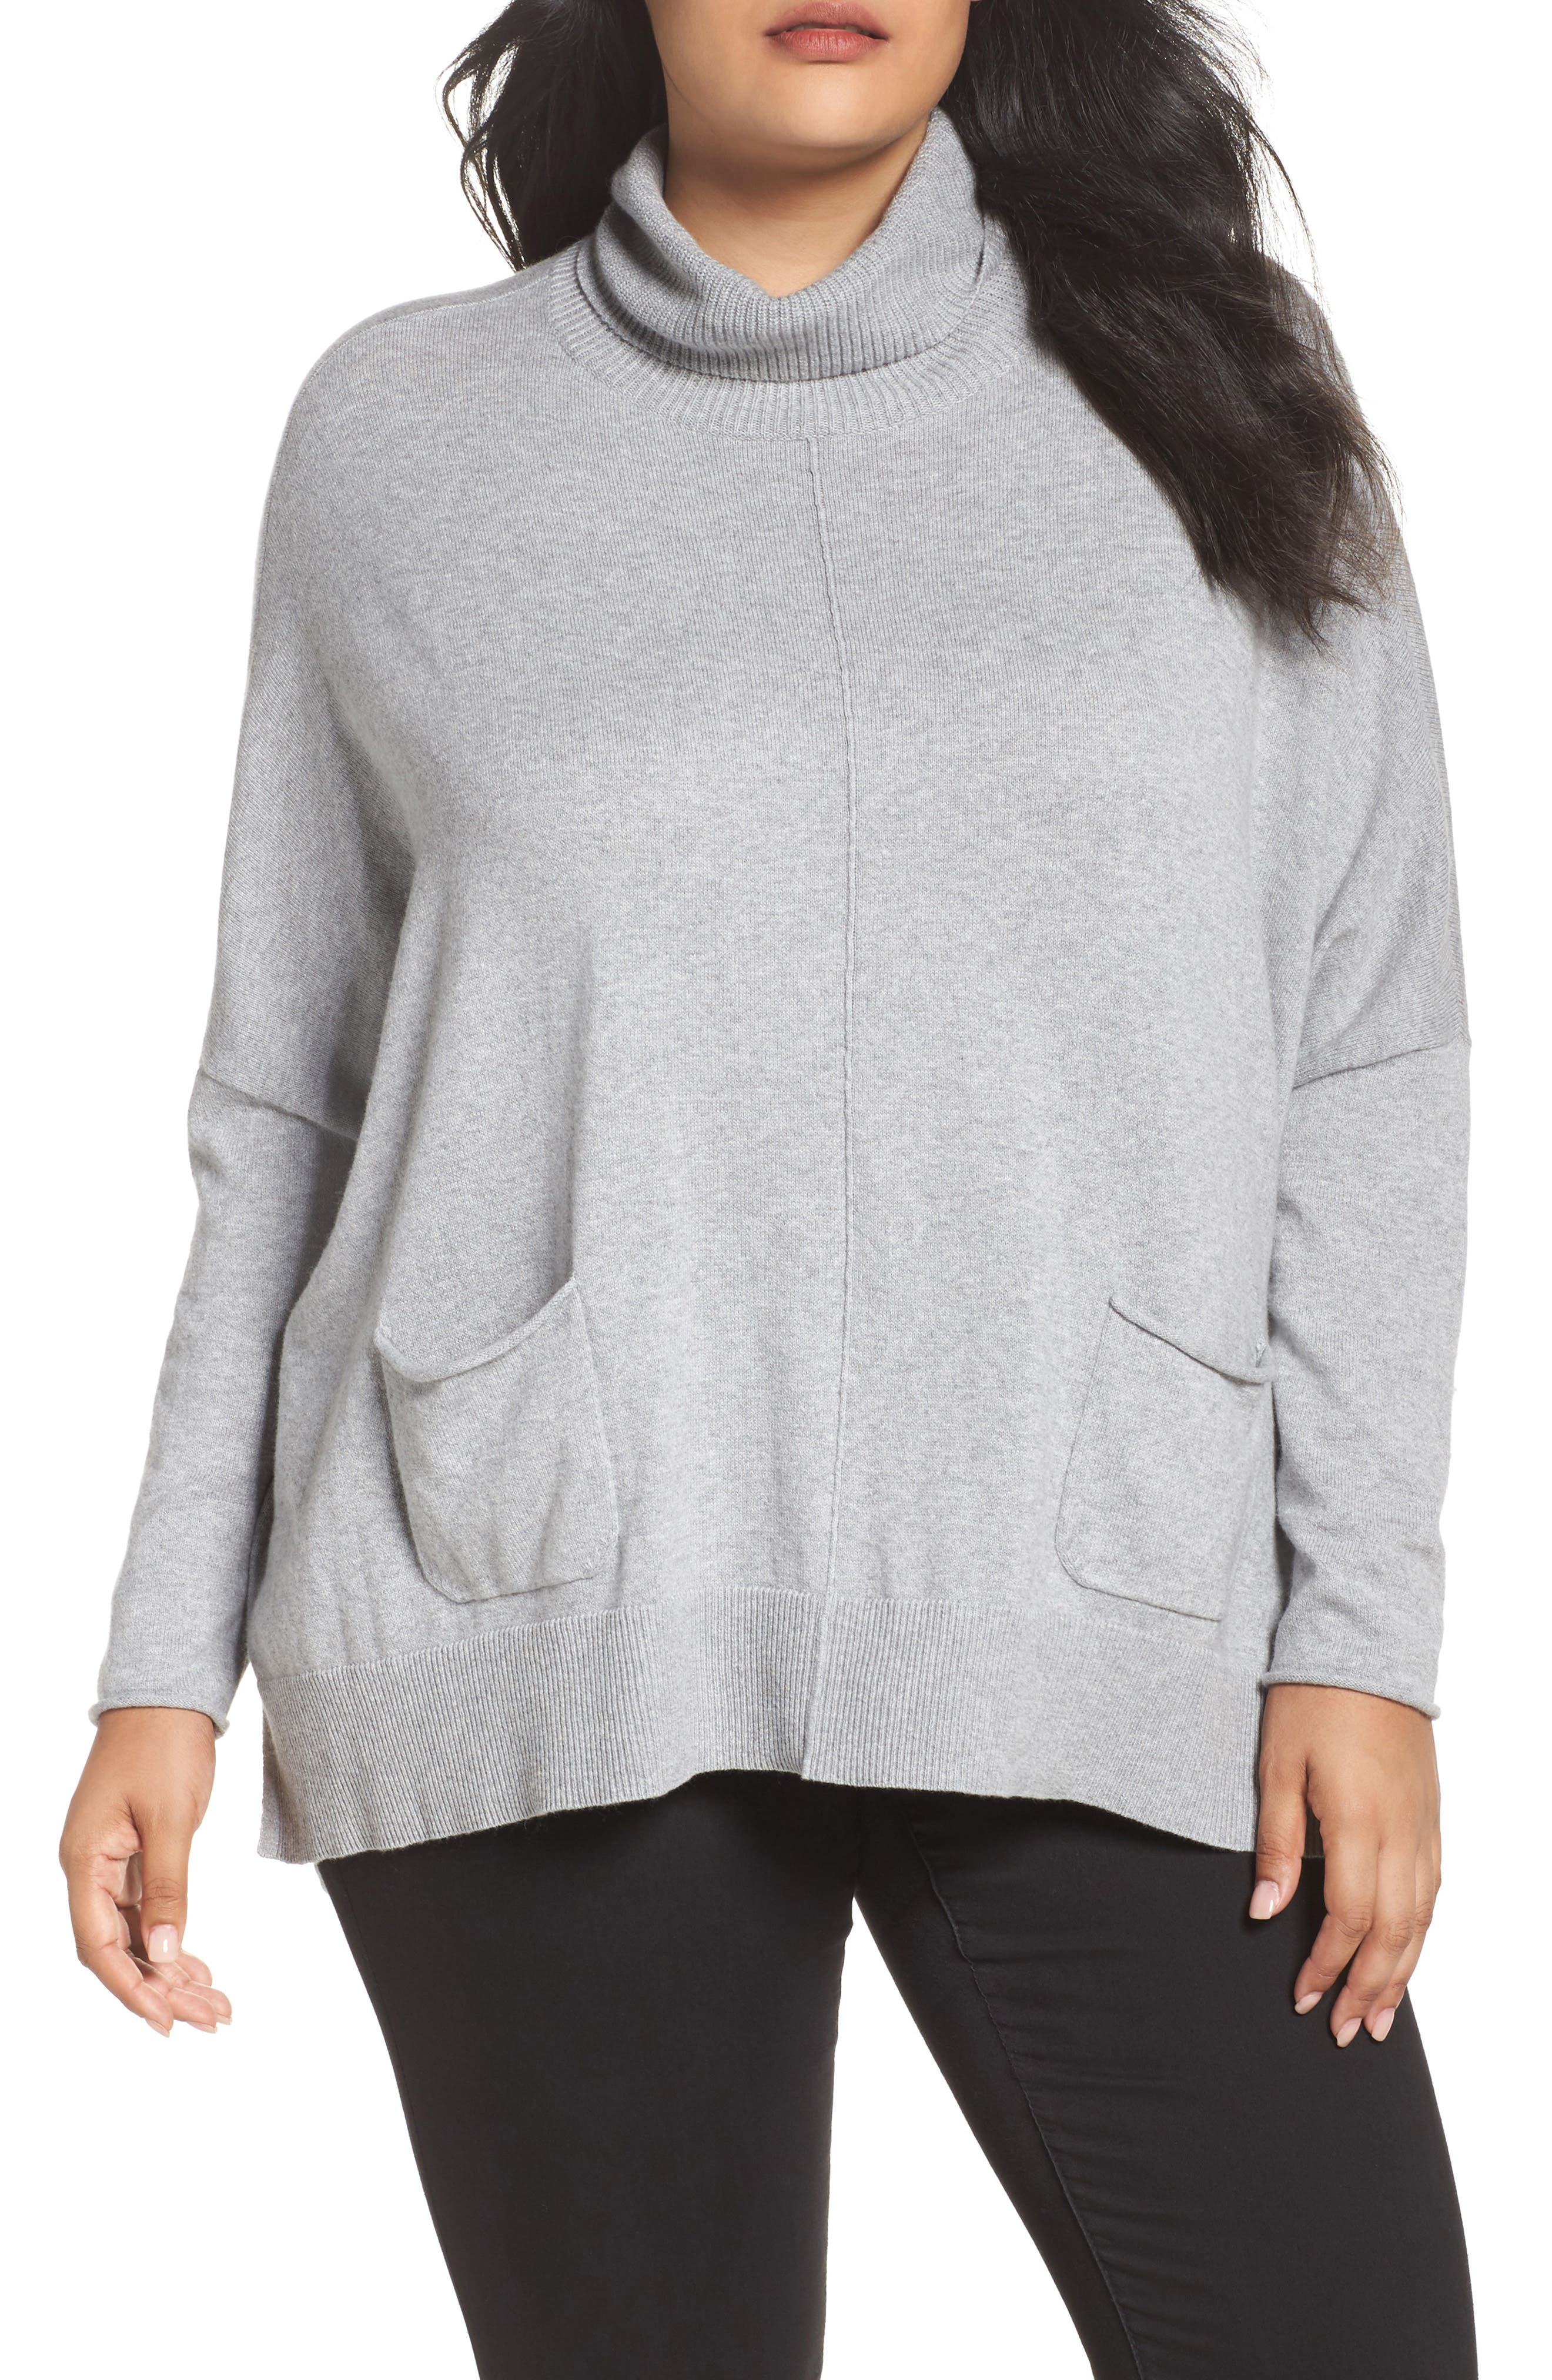 Relaxed Cotton & Cashmere Sweater,                             Main thumbnail 1, color,                             Grey Heather